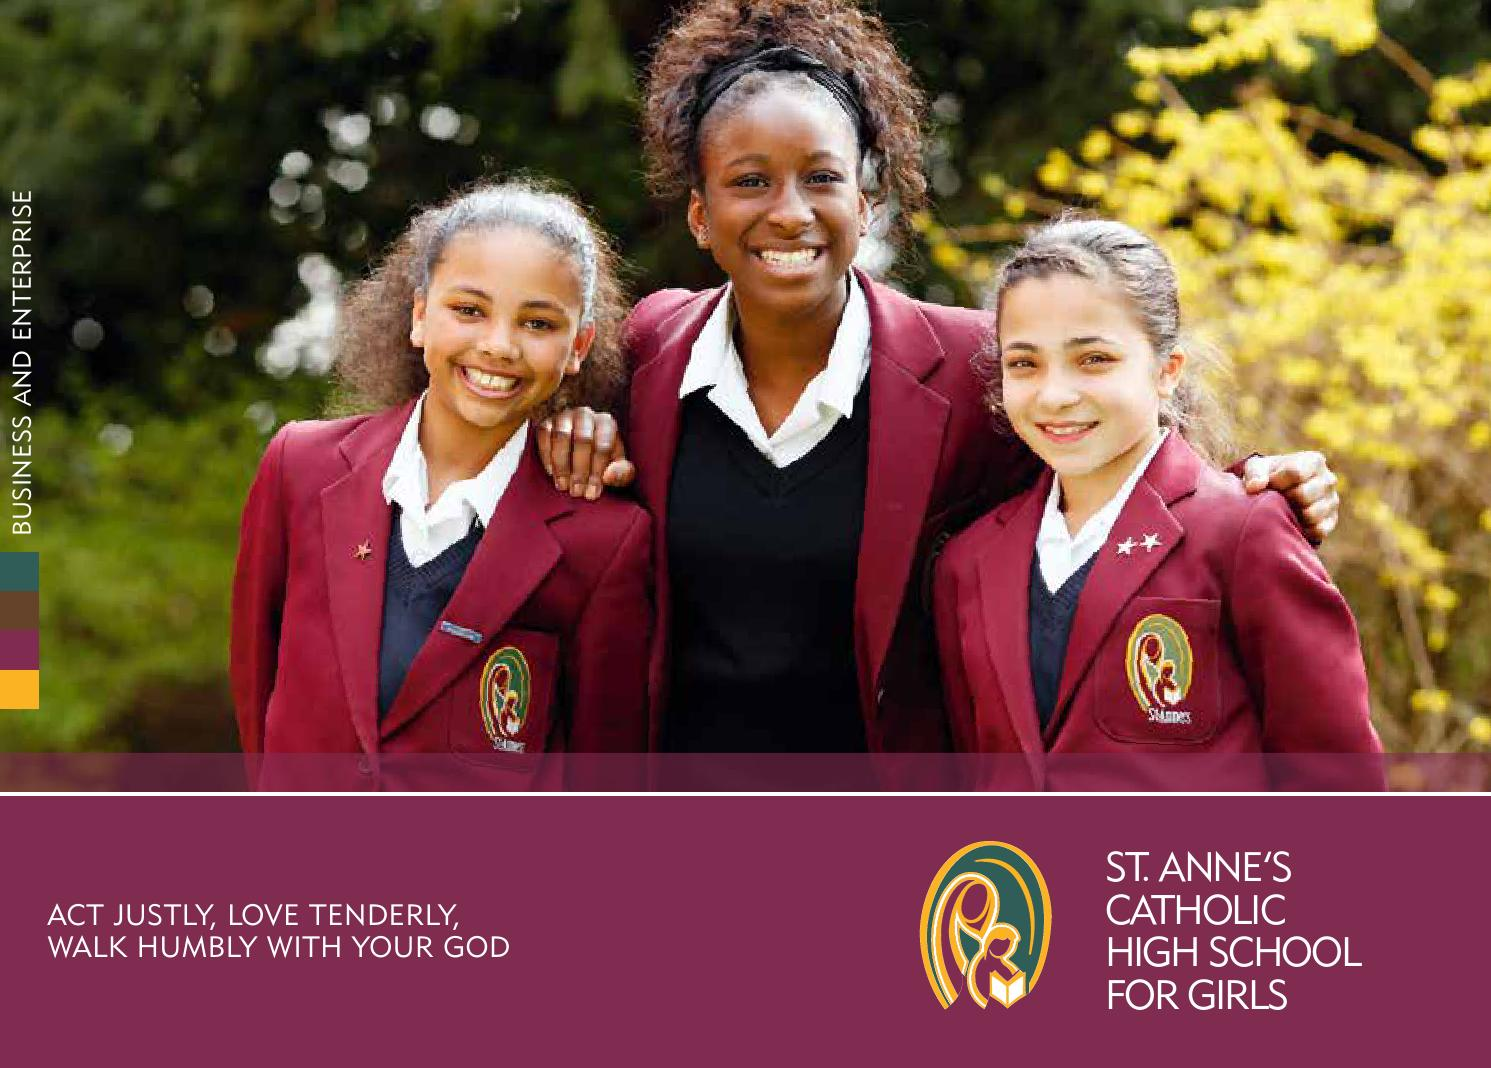 roll single catholic girls Guided by our core values, the mission of lancaster catholic high school is to develop students who are intellectually astute, passionately faithful and socially responsible through a rigorous and balanced educational experience.